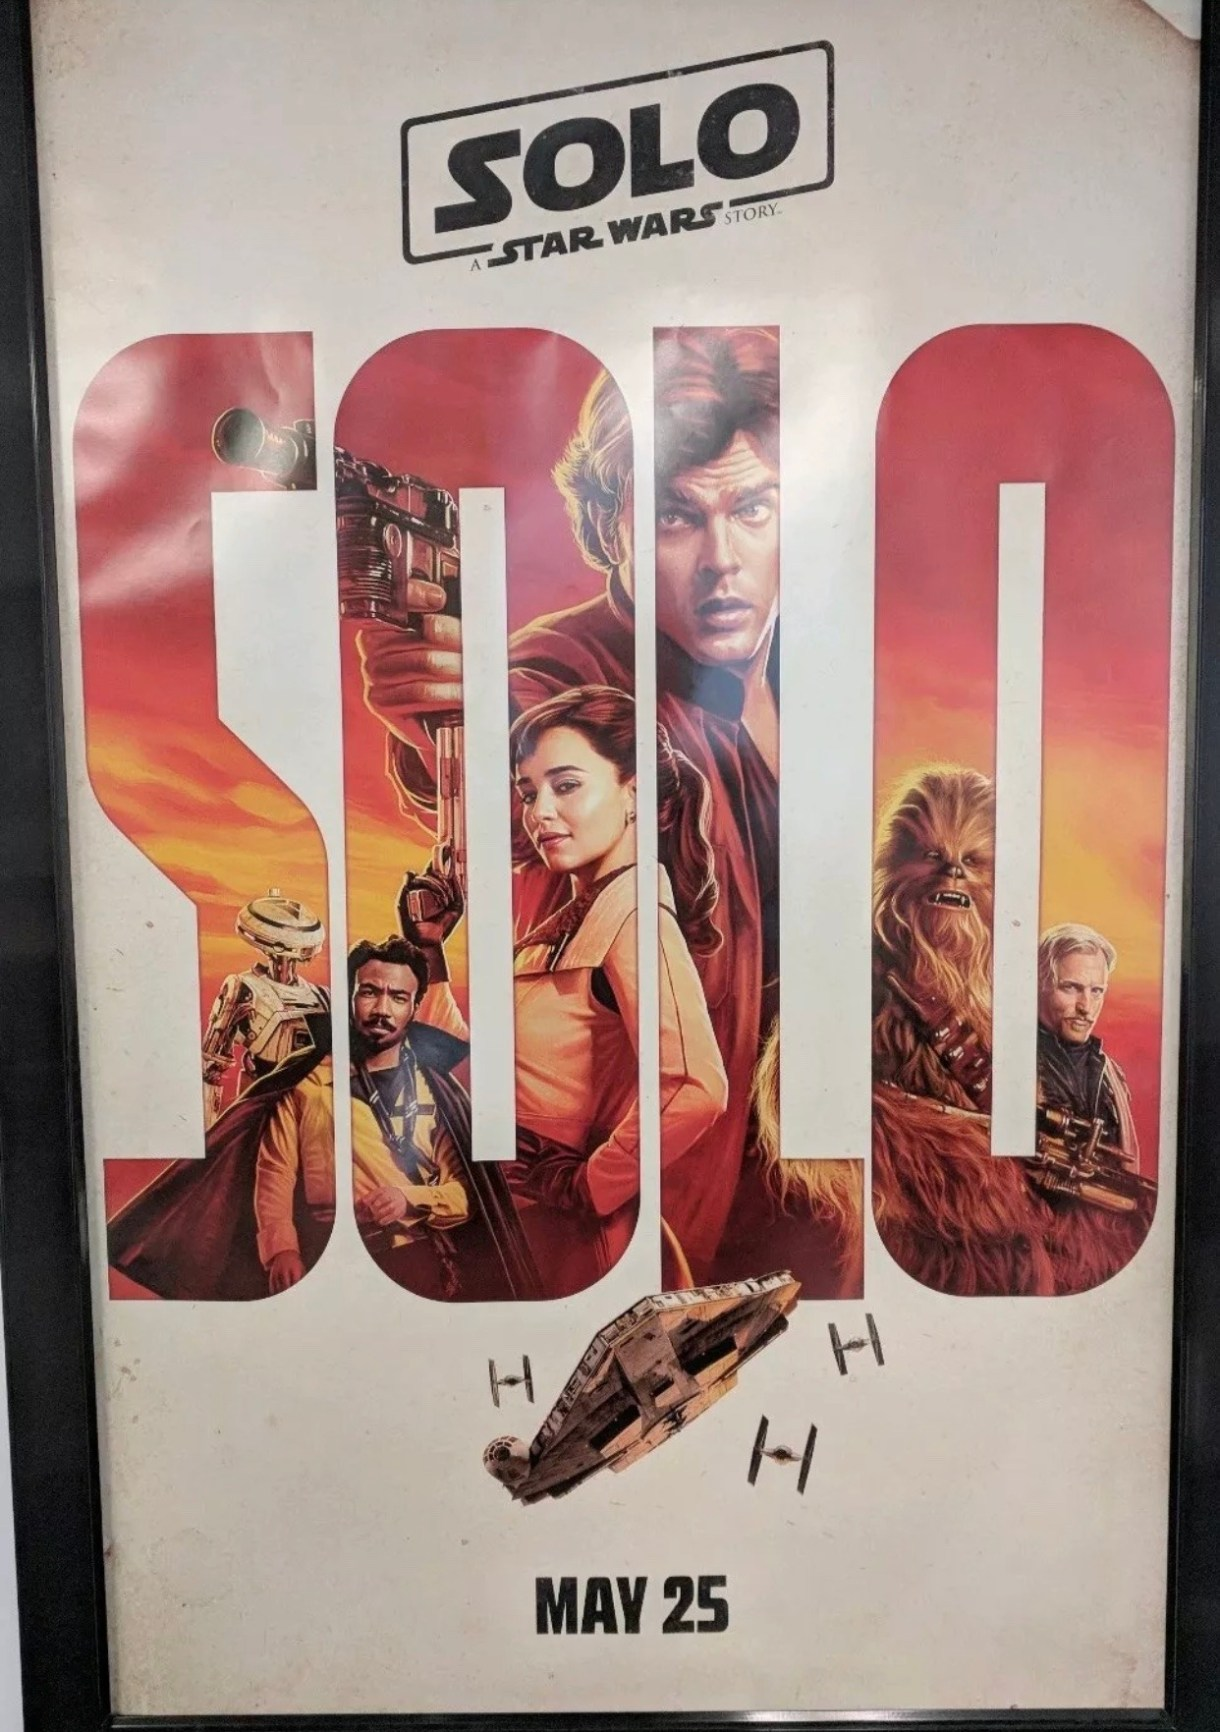 First Solo: A Star Wars Story theatrical poster hitting theaters!